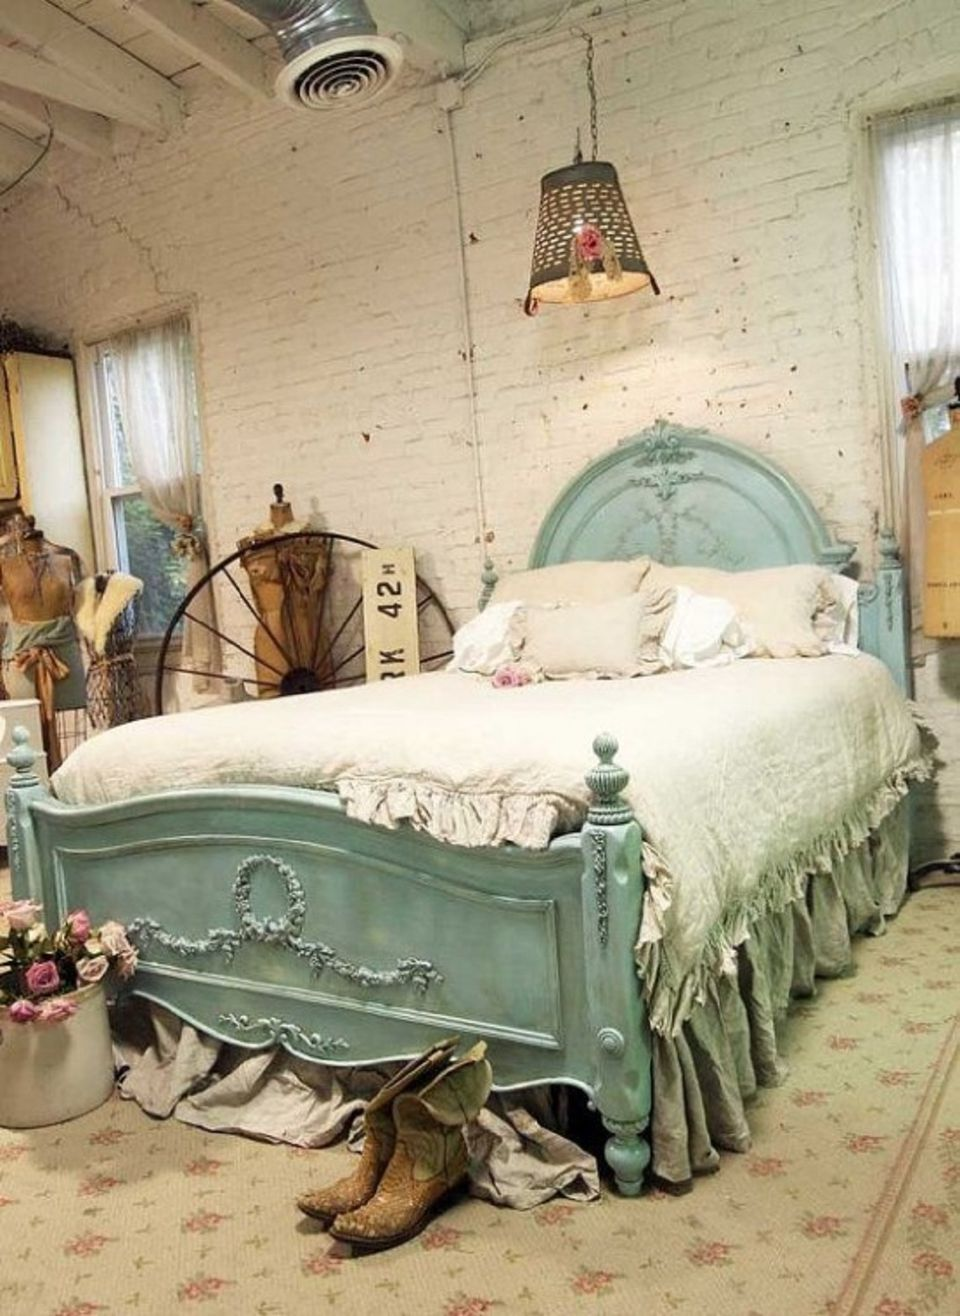 Vintage bedroom in industrial loft.